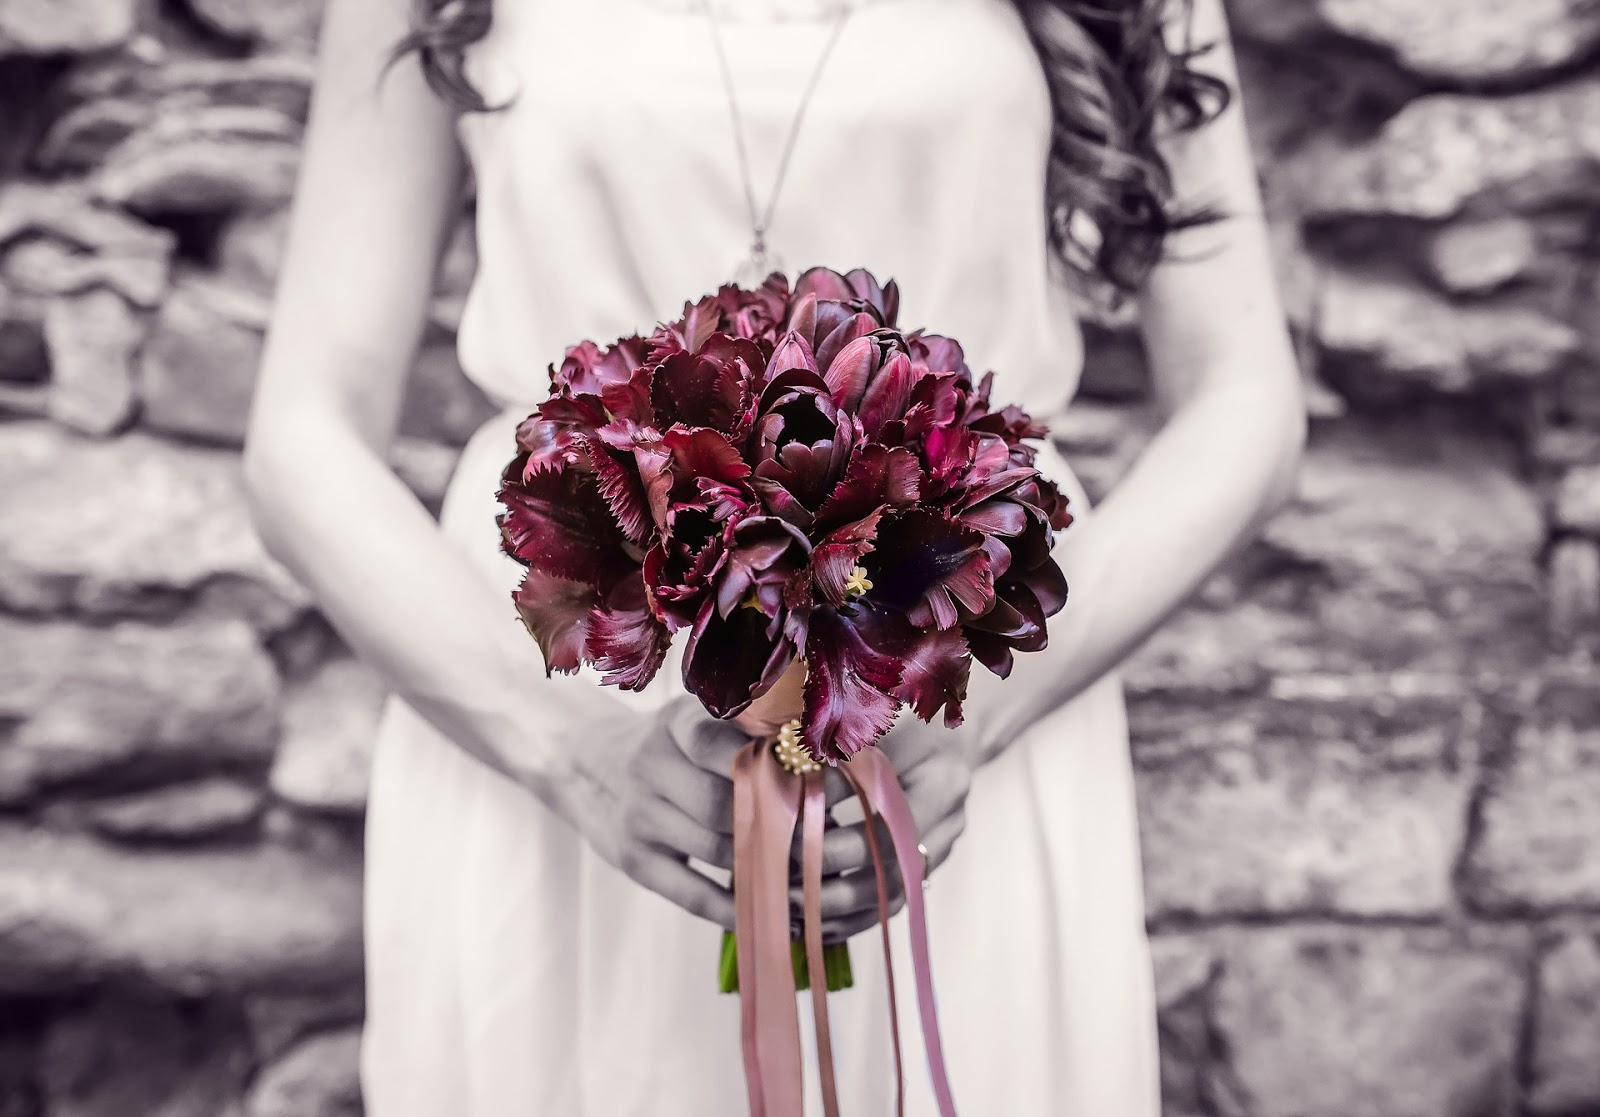 The kerrie show give flowers to show love respect and caring flowers at a funeral have a totally different meaning they express the celebration of a life that has already passed they also add grace and beauty to a izmirmasajfo